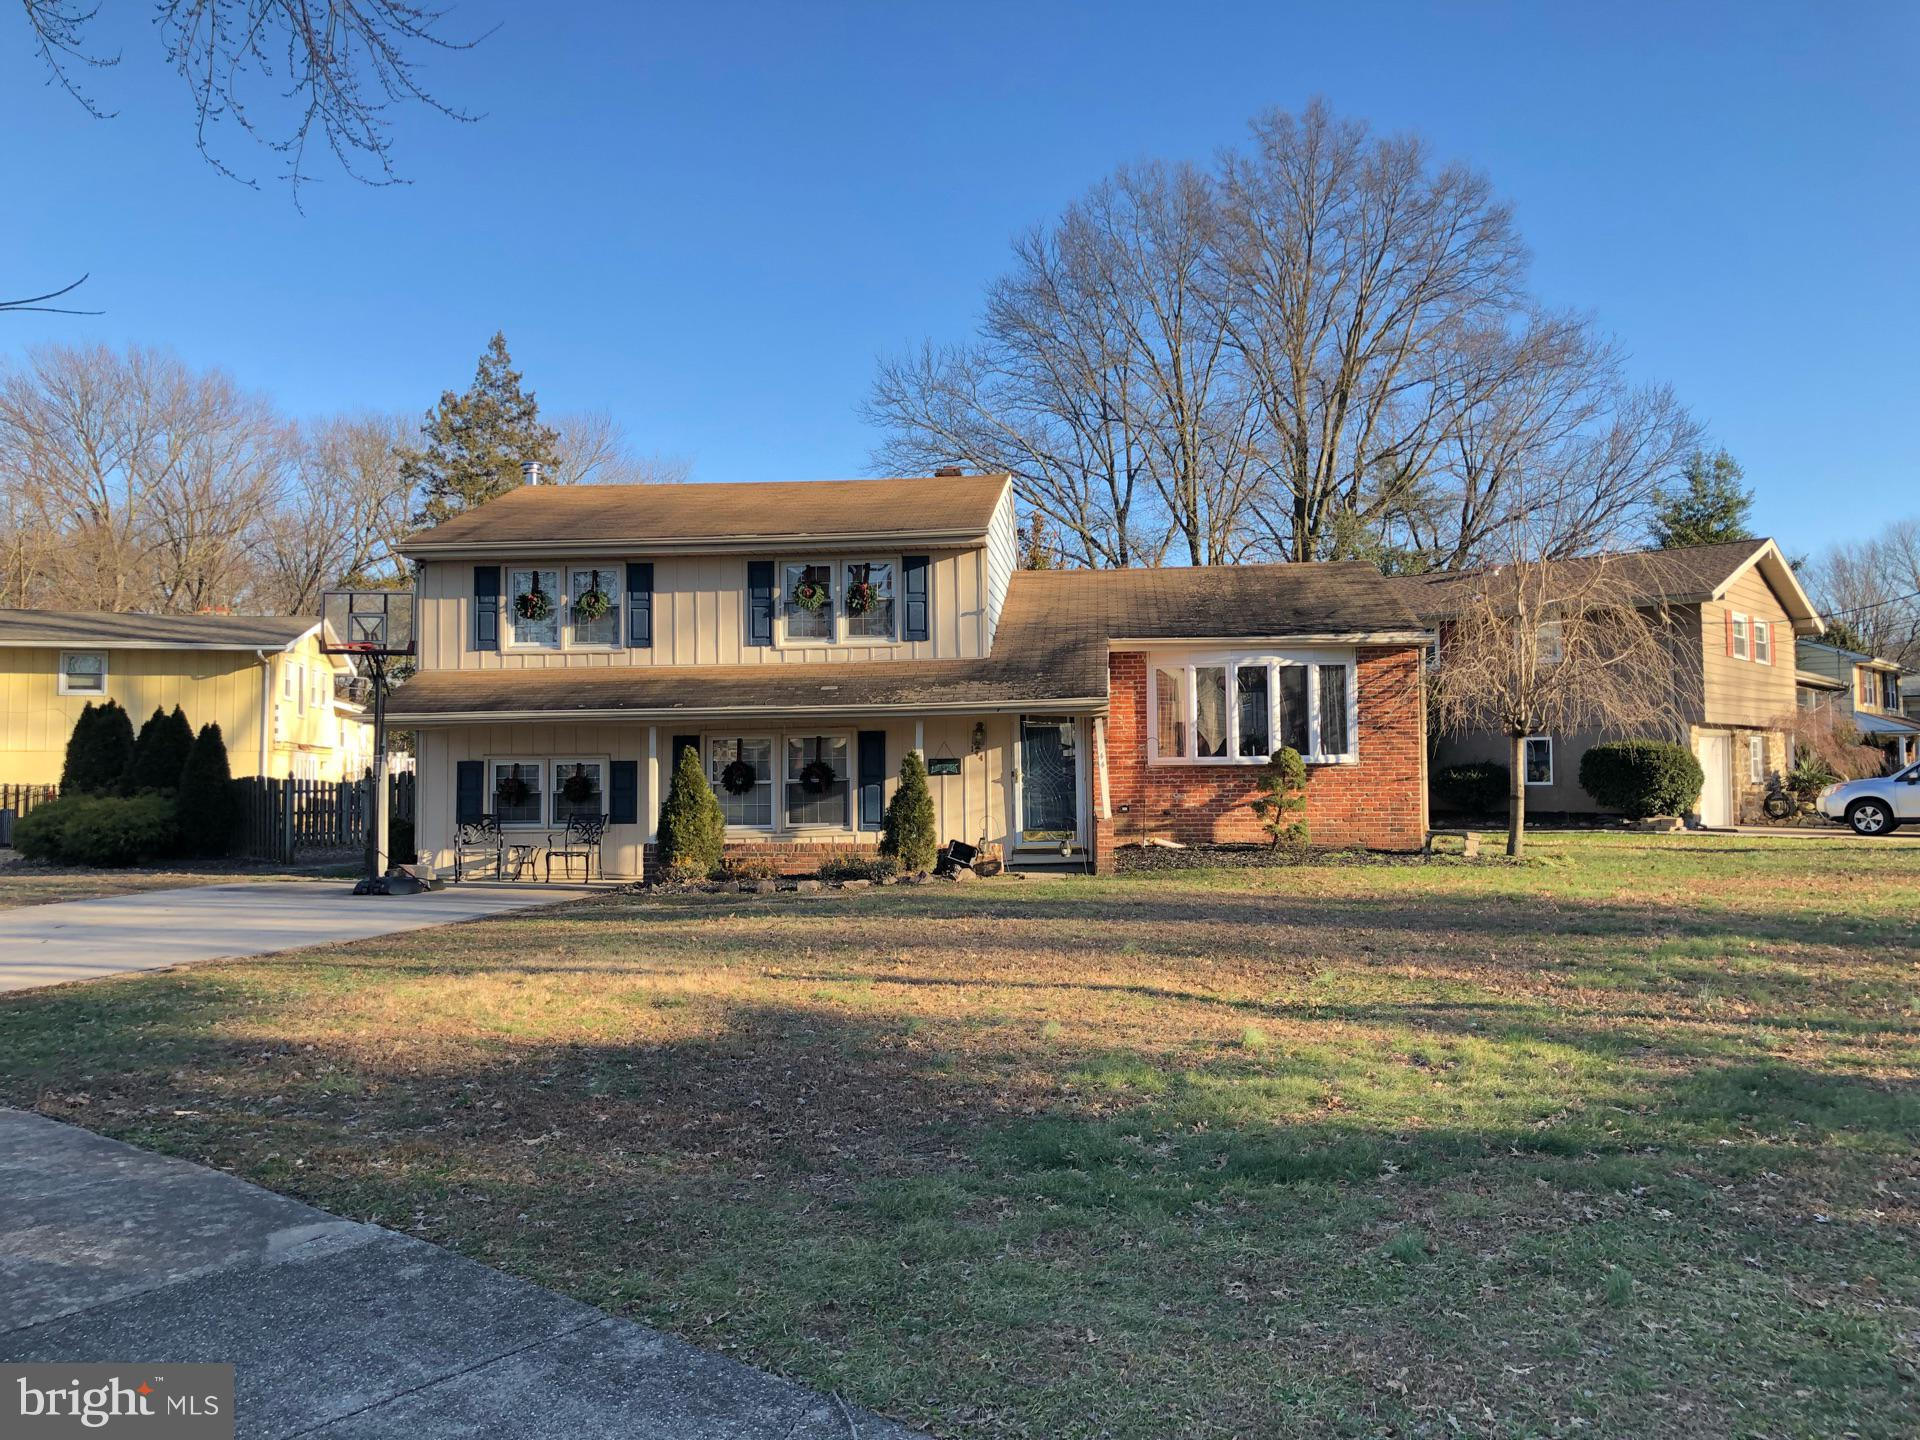 Haddon Township~s finest neighborhood beholds this gem of a home. Tucked away on a quiet residential street where there is strong pride, this home is located on a large corner lot. Hurry and get your offer in today as this Fannie Mae home will not last long!!!  The online sale will begin 2/4/2019 and end 2/6/2019.